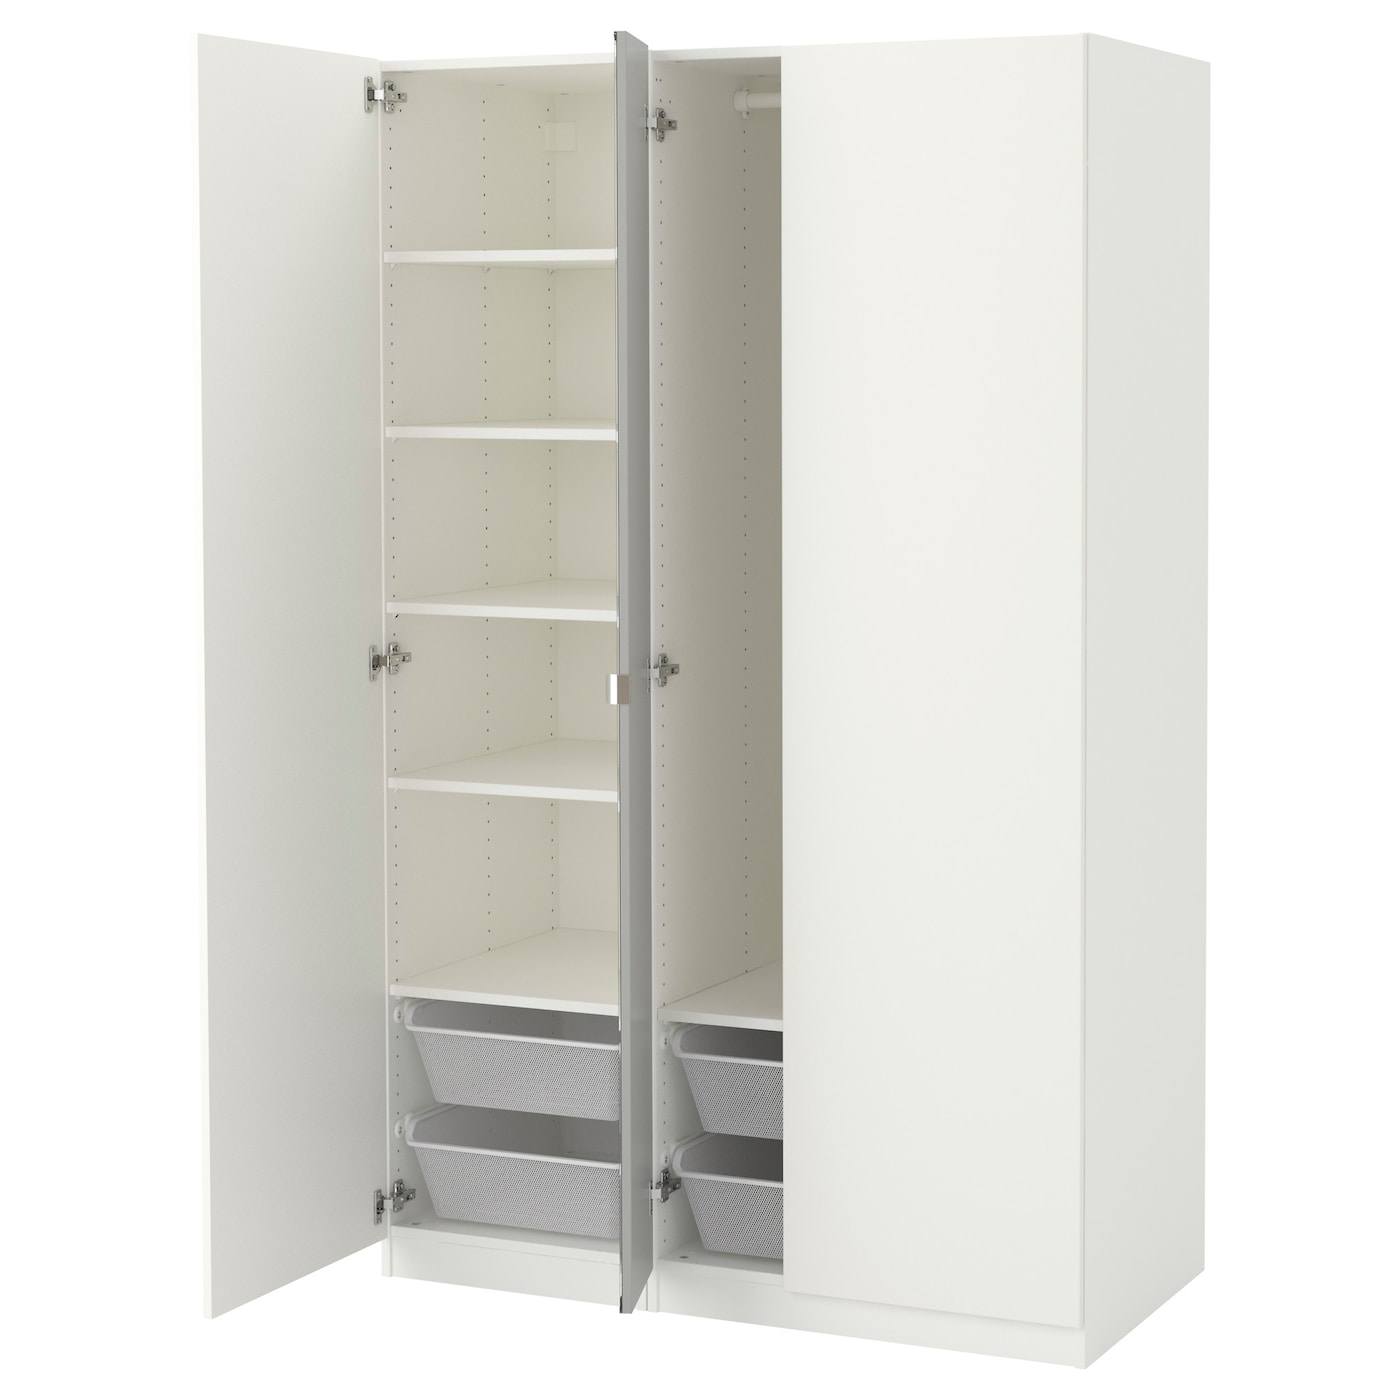 pax wardrobe white ballstad vikedal 125x60x201 cm ikea. Black Bedroom Furniture Sets. Home Design Ideas